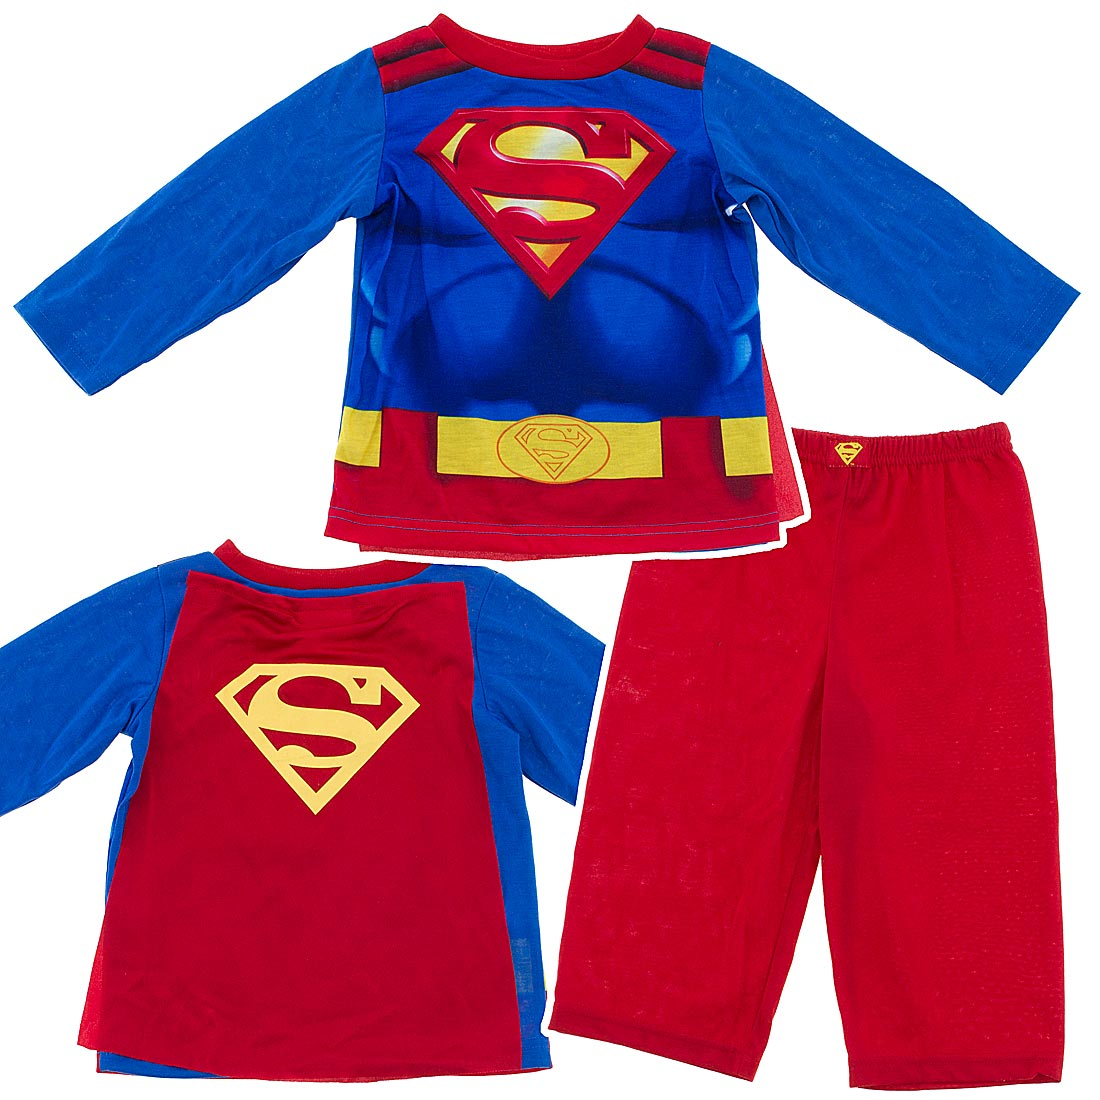 Superman Pajamas With Cape For Toddlers